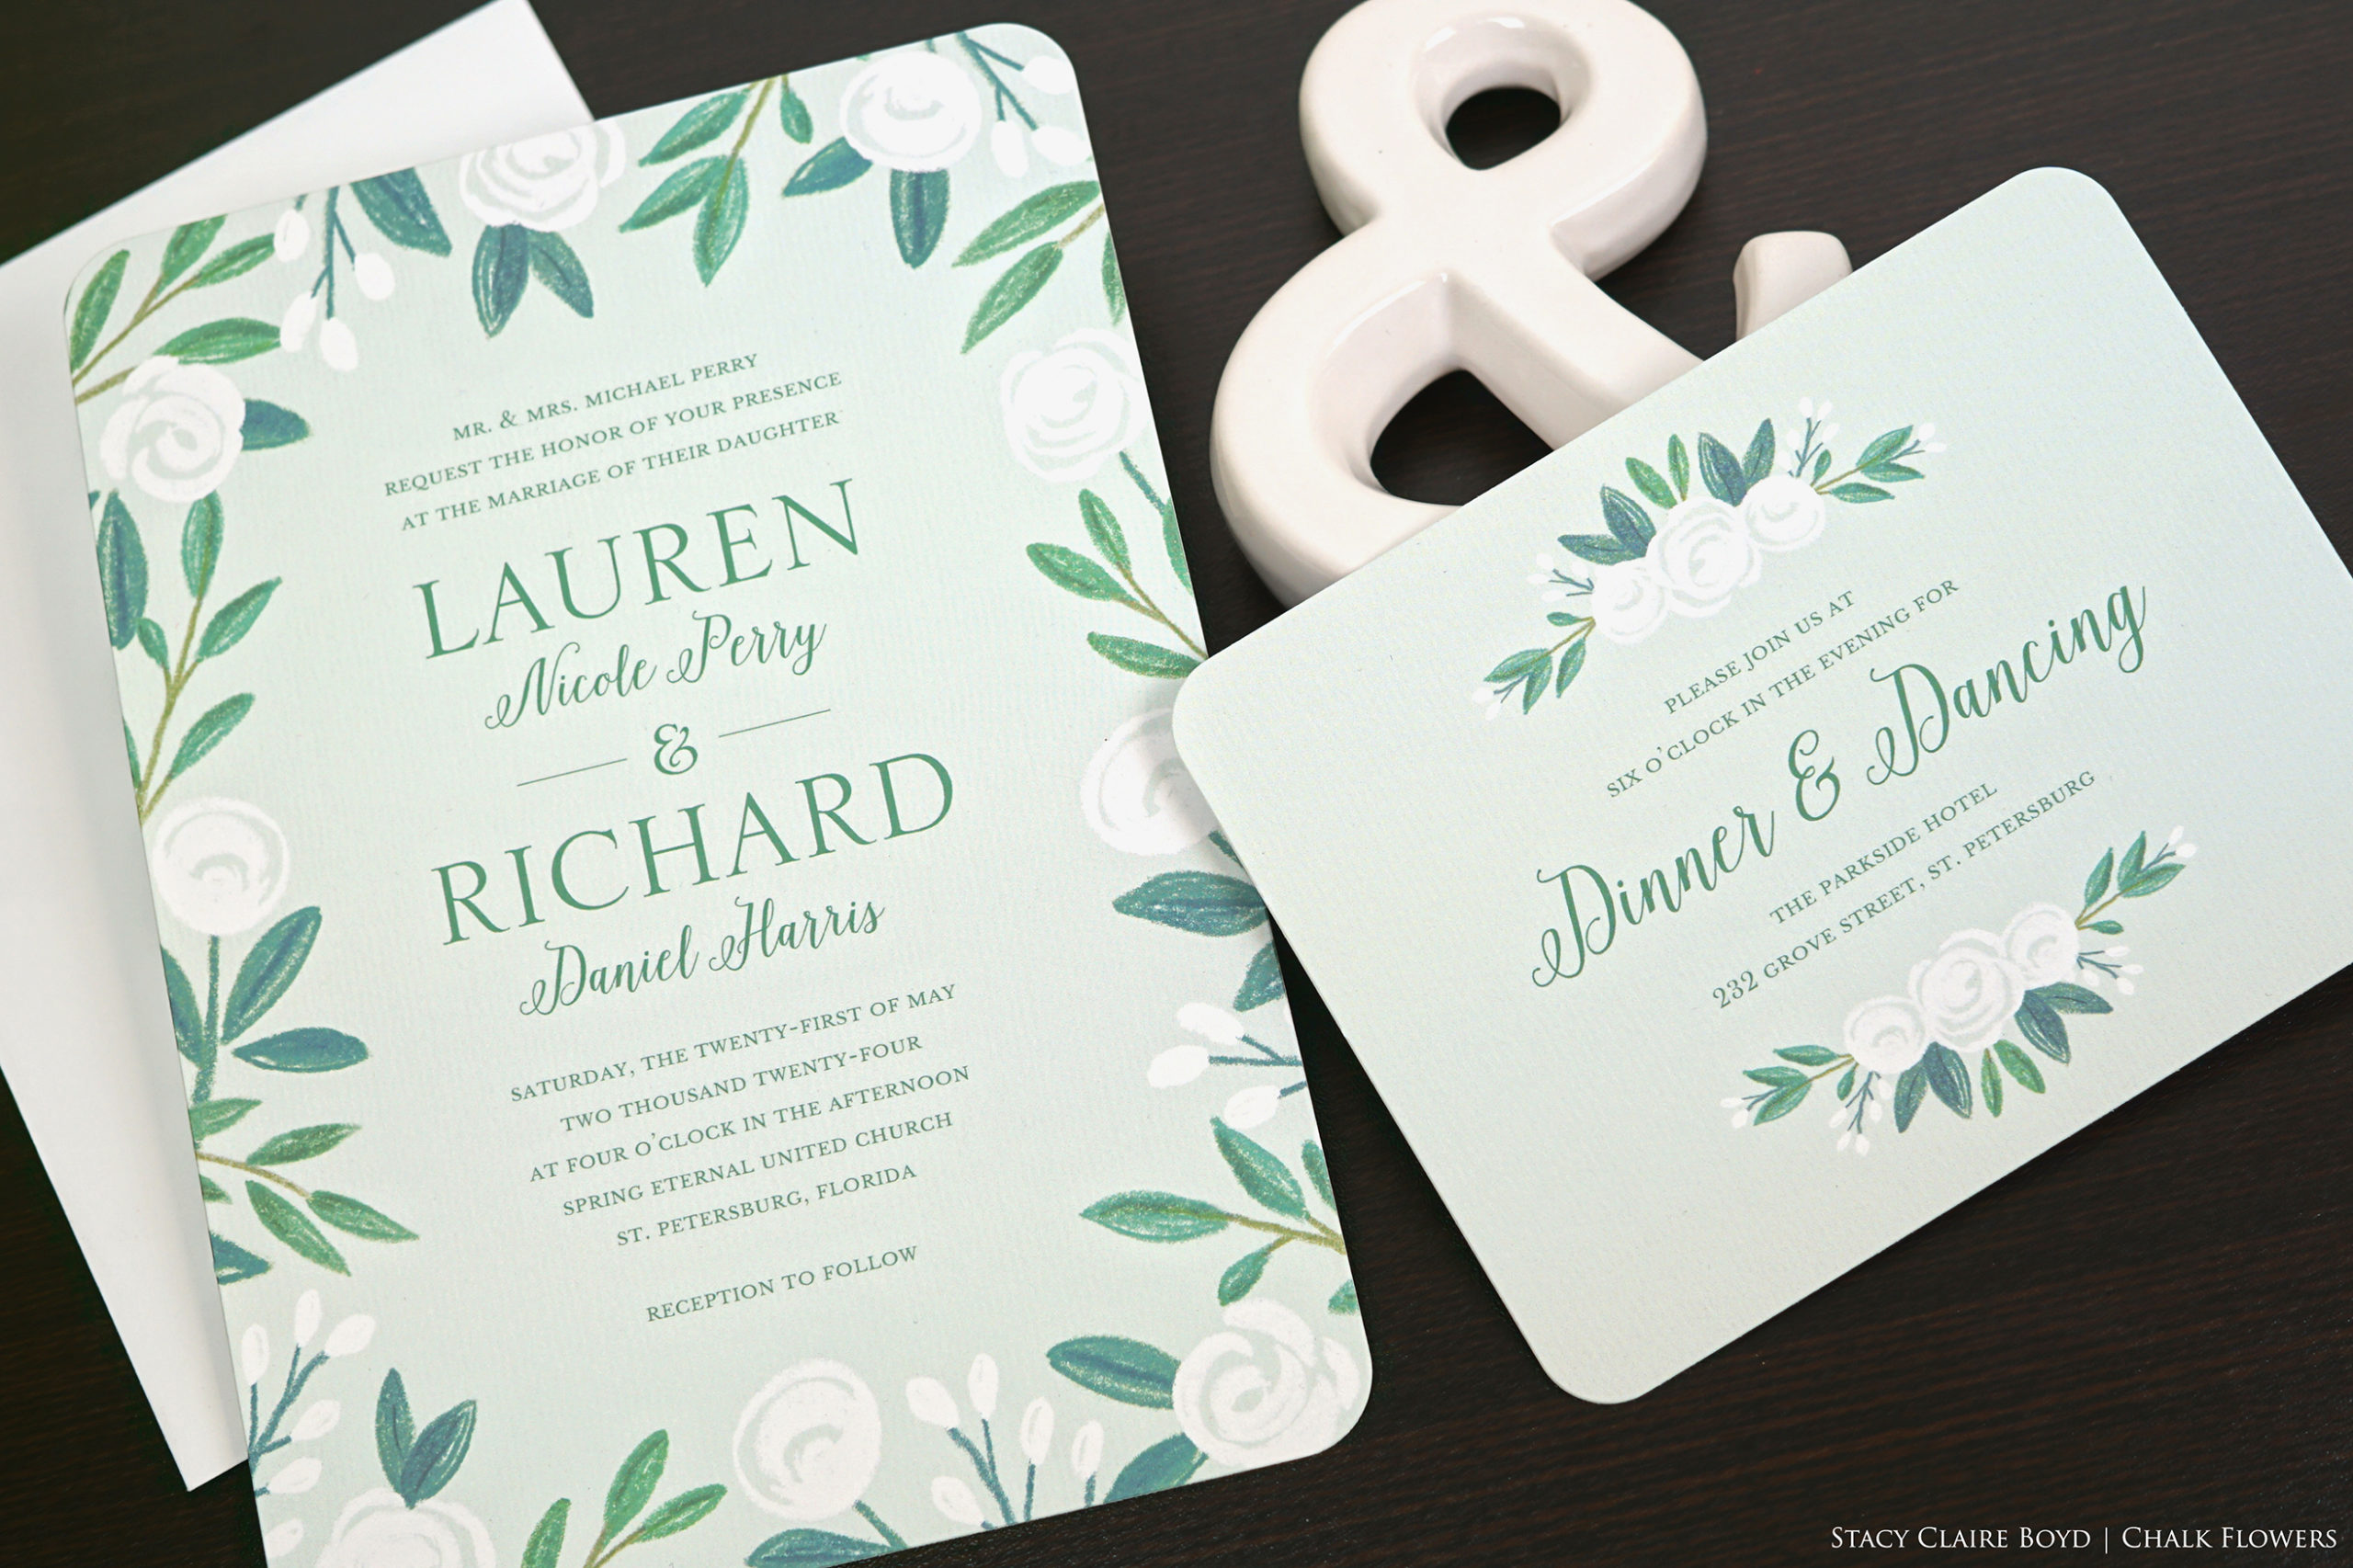 Chalk Flowers wedding suite by Stacy Claire Boyd features primitive floral artwork on a mint green background.